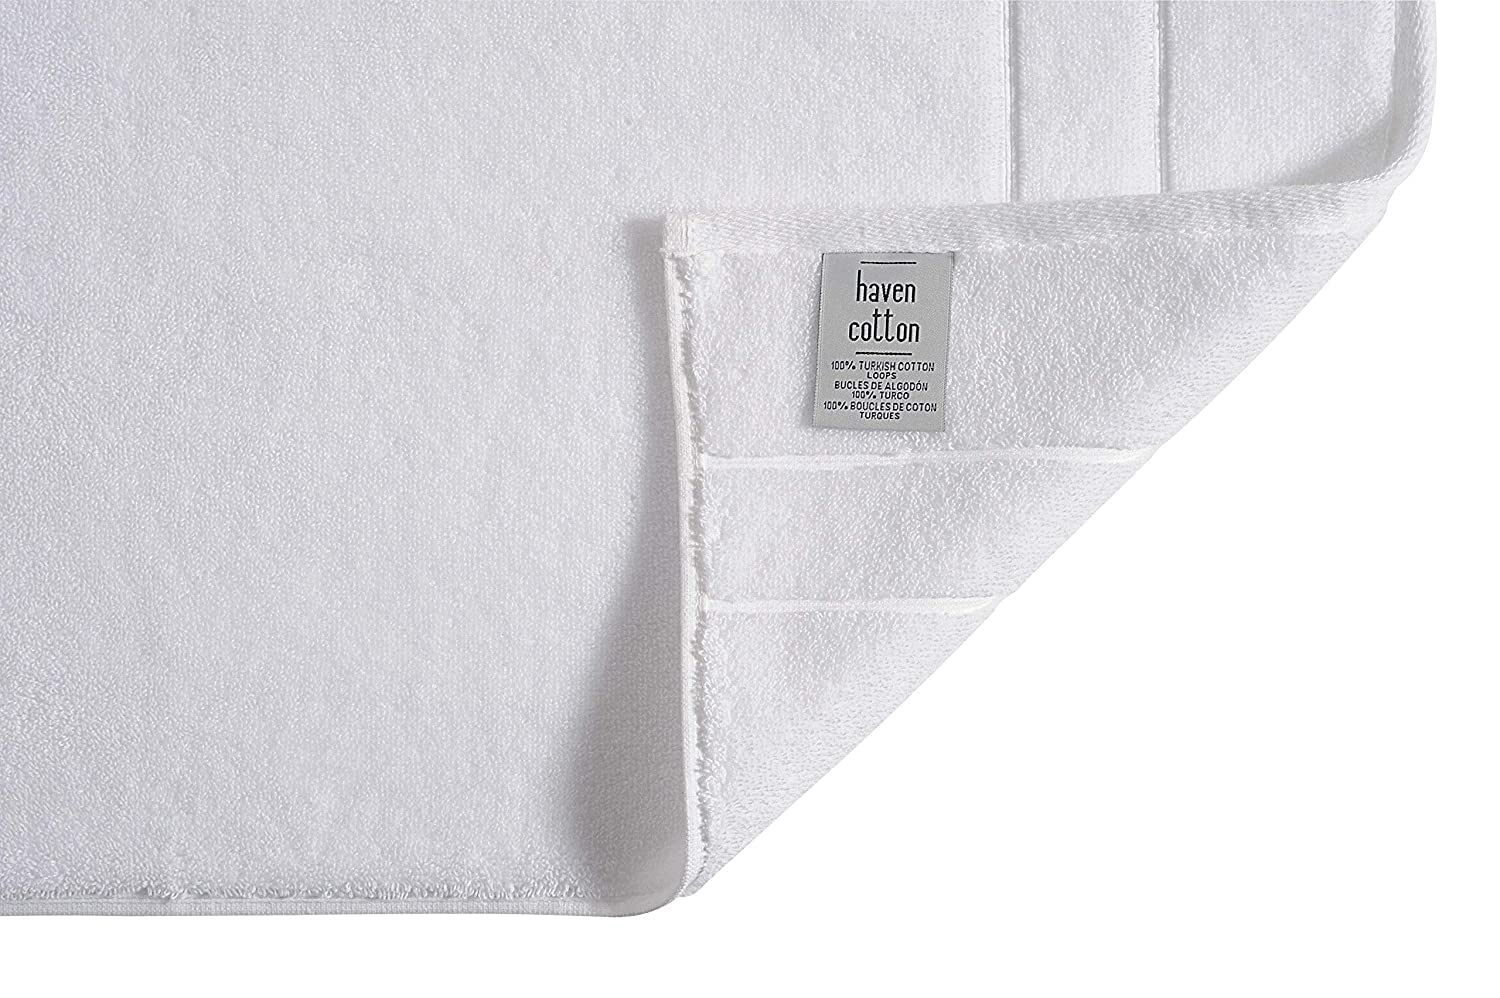 12 Pcs Haven Cotton 809407115184 Hand Towel White